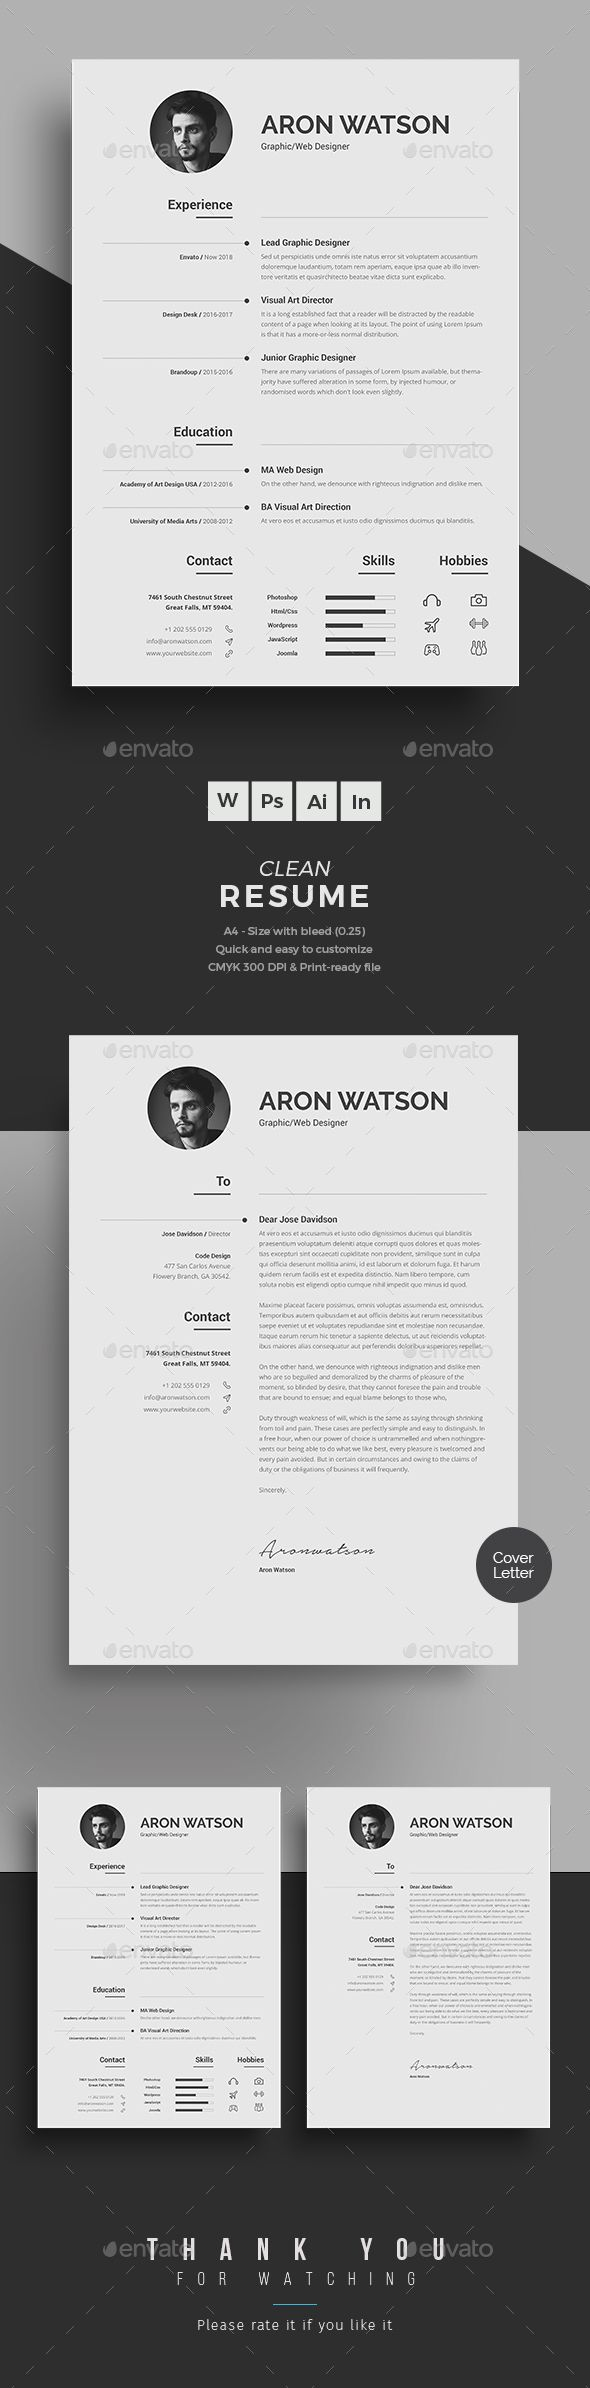 clean resume format in word  simple typographic and visual presentation of professional skills